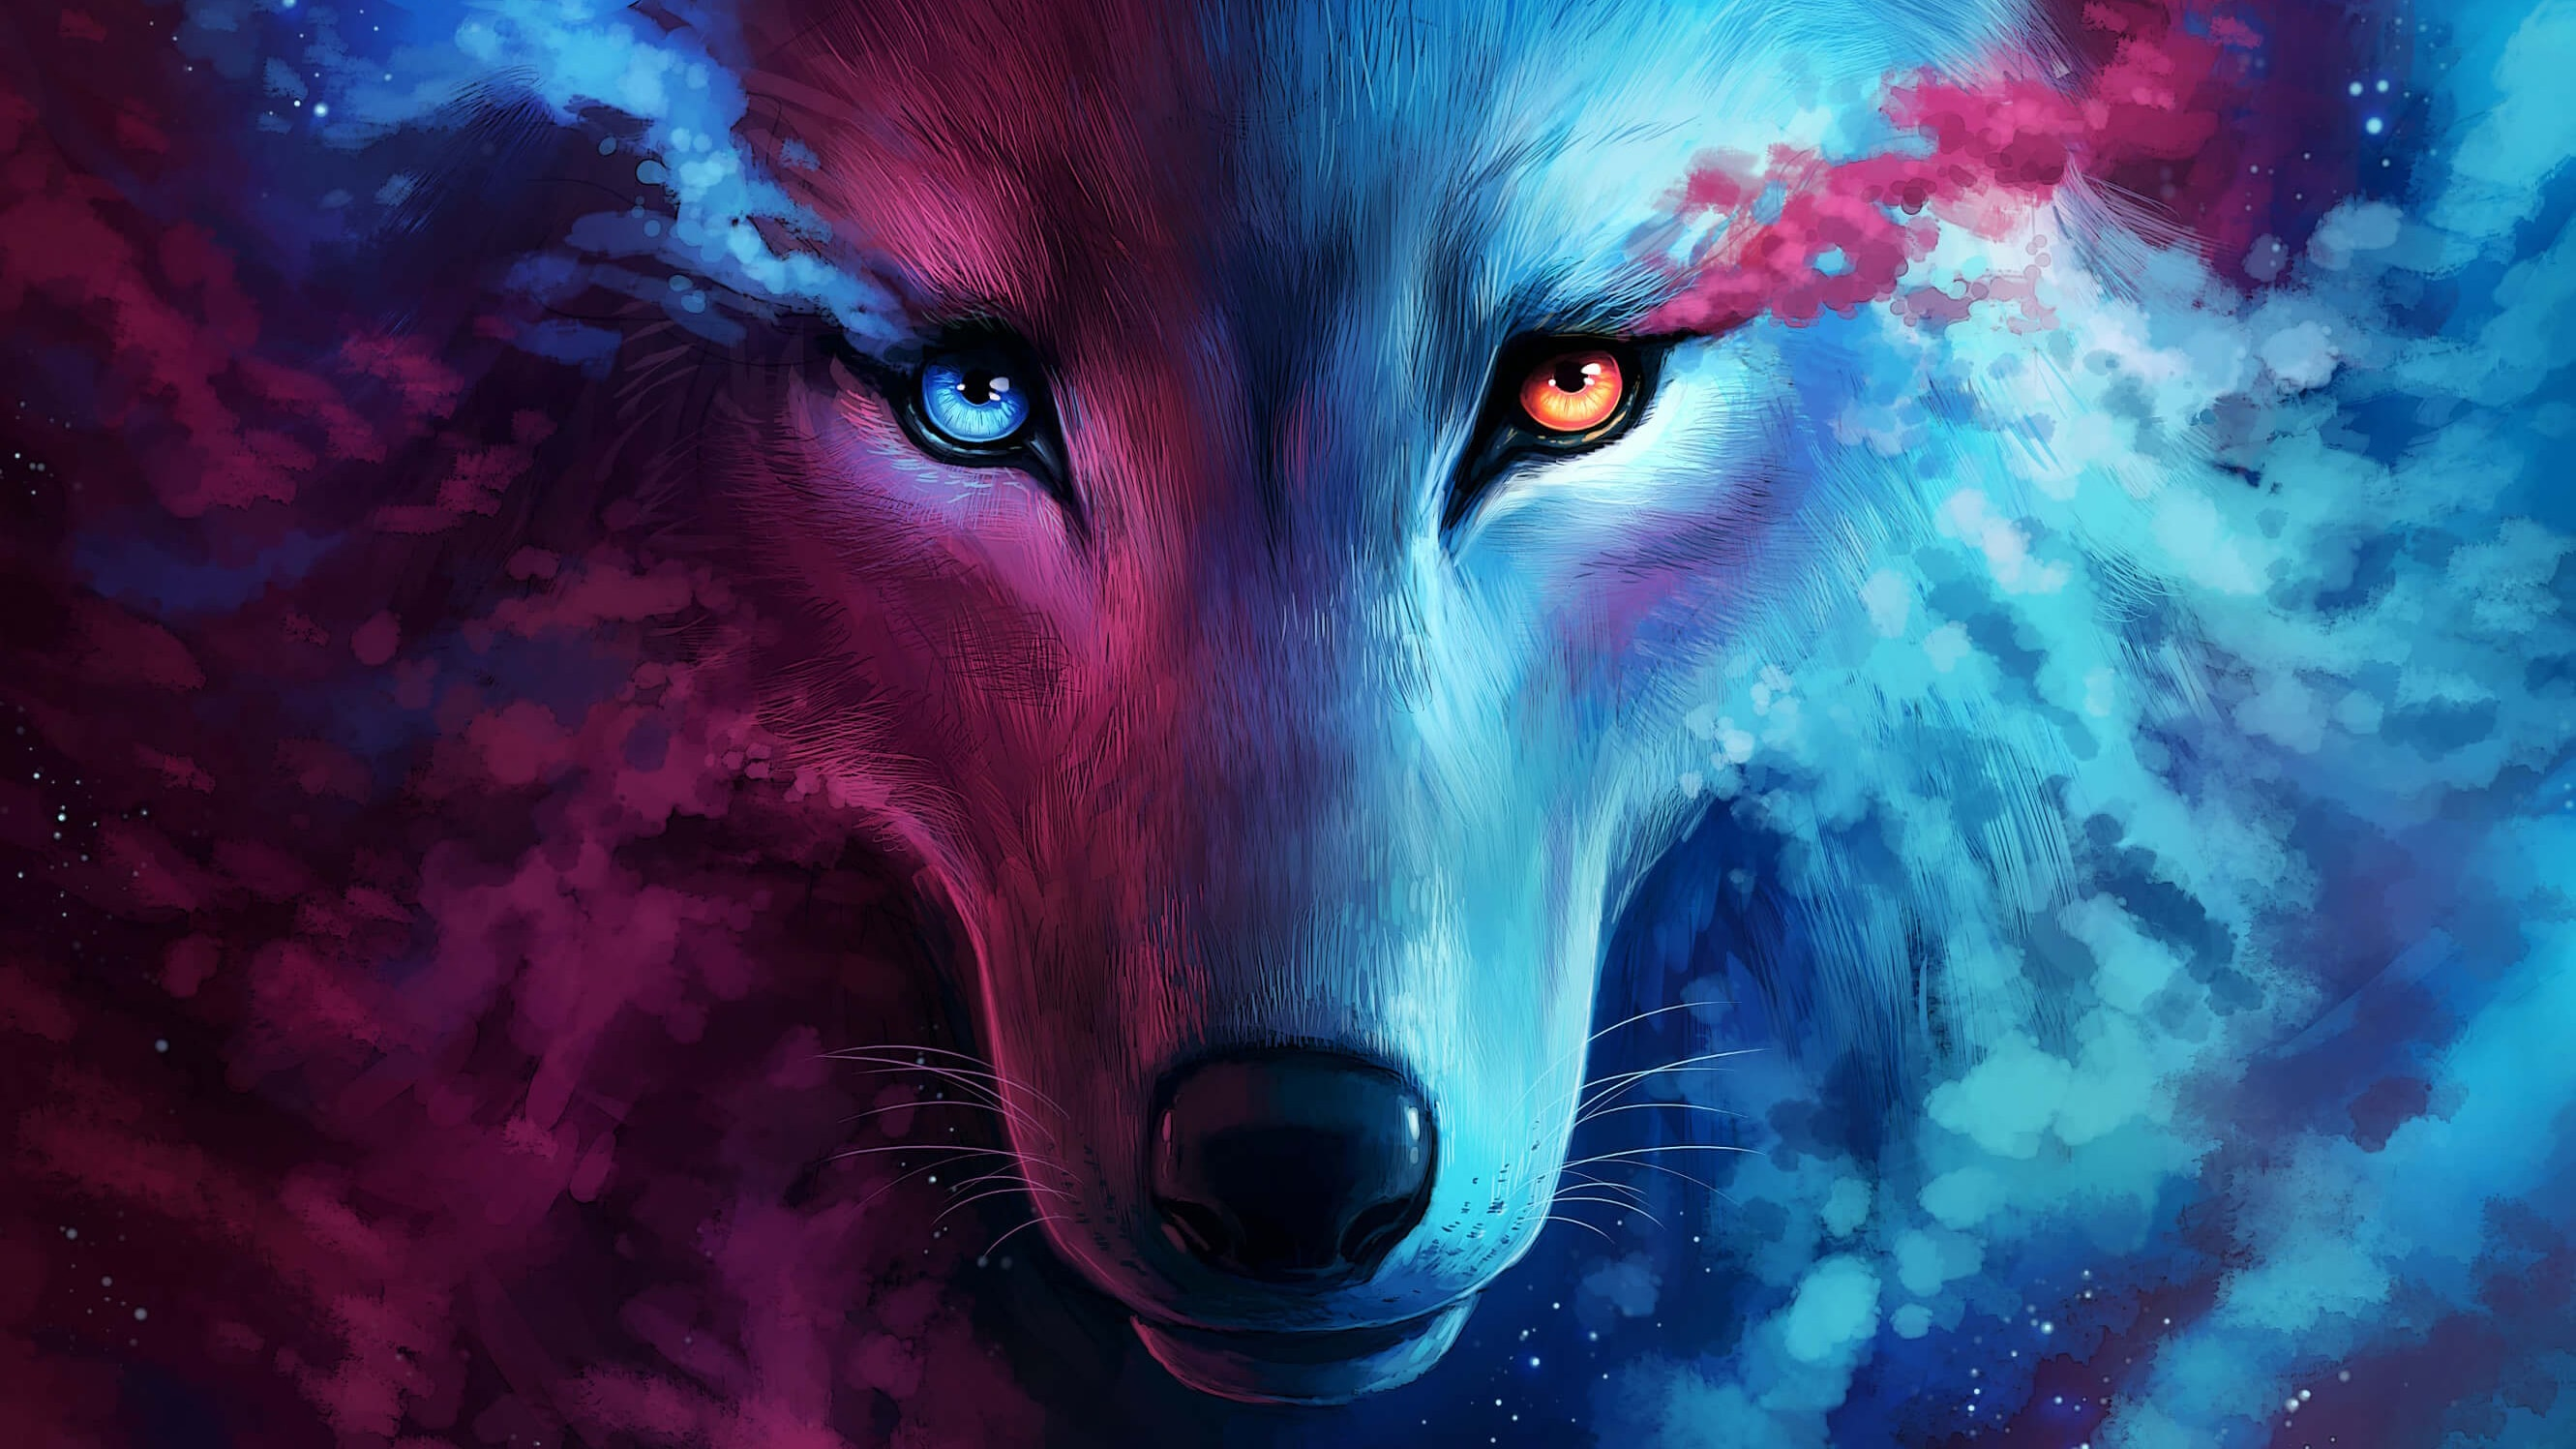 Wolf Wallpapers 4K   KoLPaPer   Awesome HD Wallpapers 2662x1497